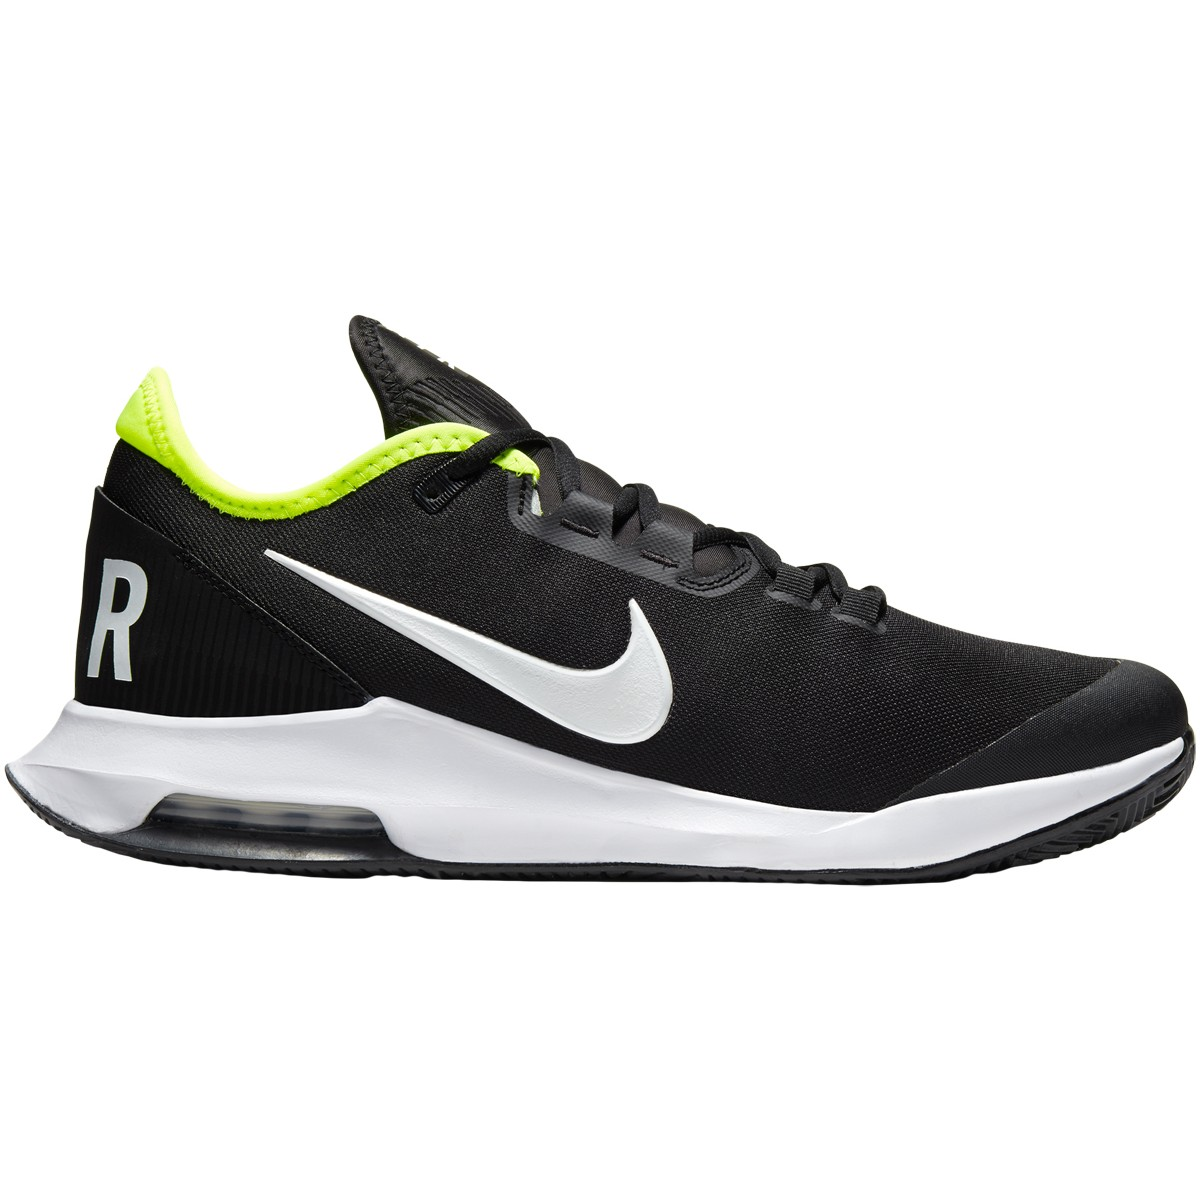 NIKE AIR MAX WILDCARD CLAY COURT SHOES NIKE Men's